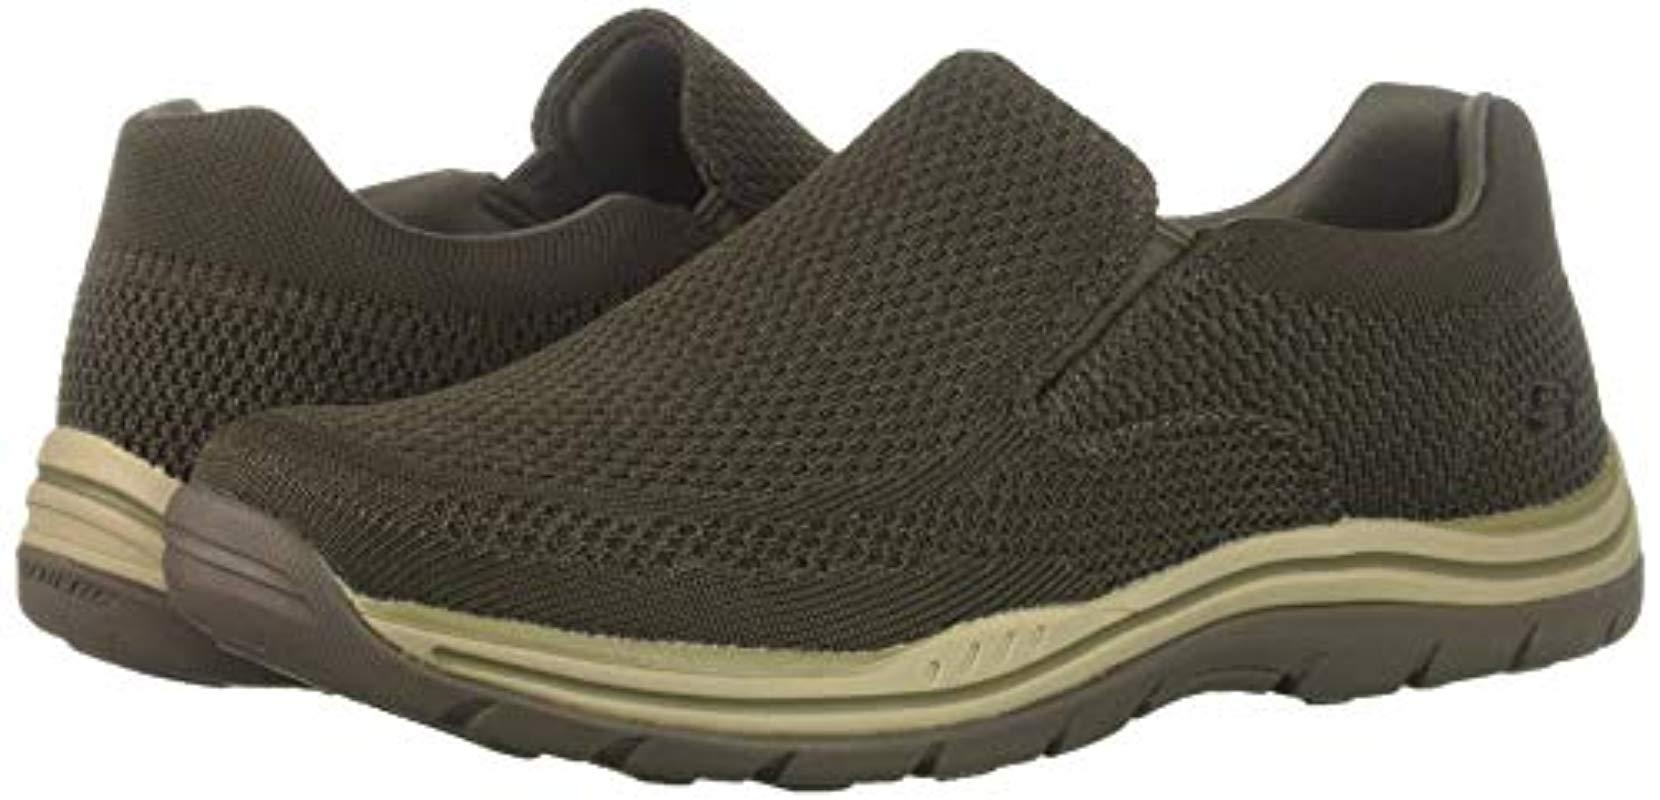 Skechers Expected Gomel Driving Style Loafer, Olbr, 10.5